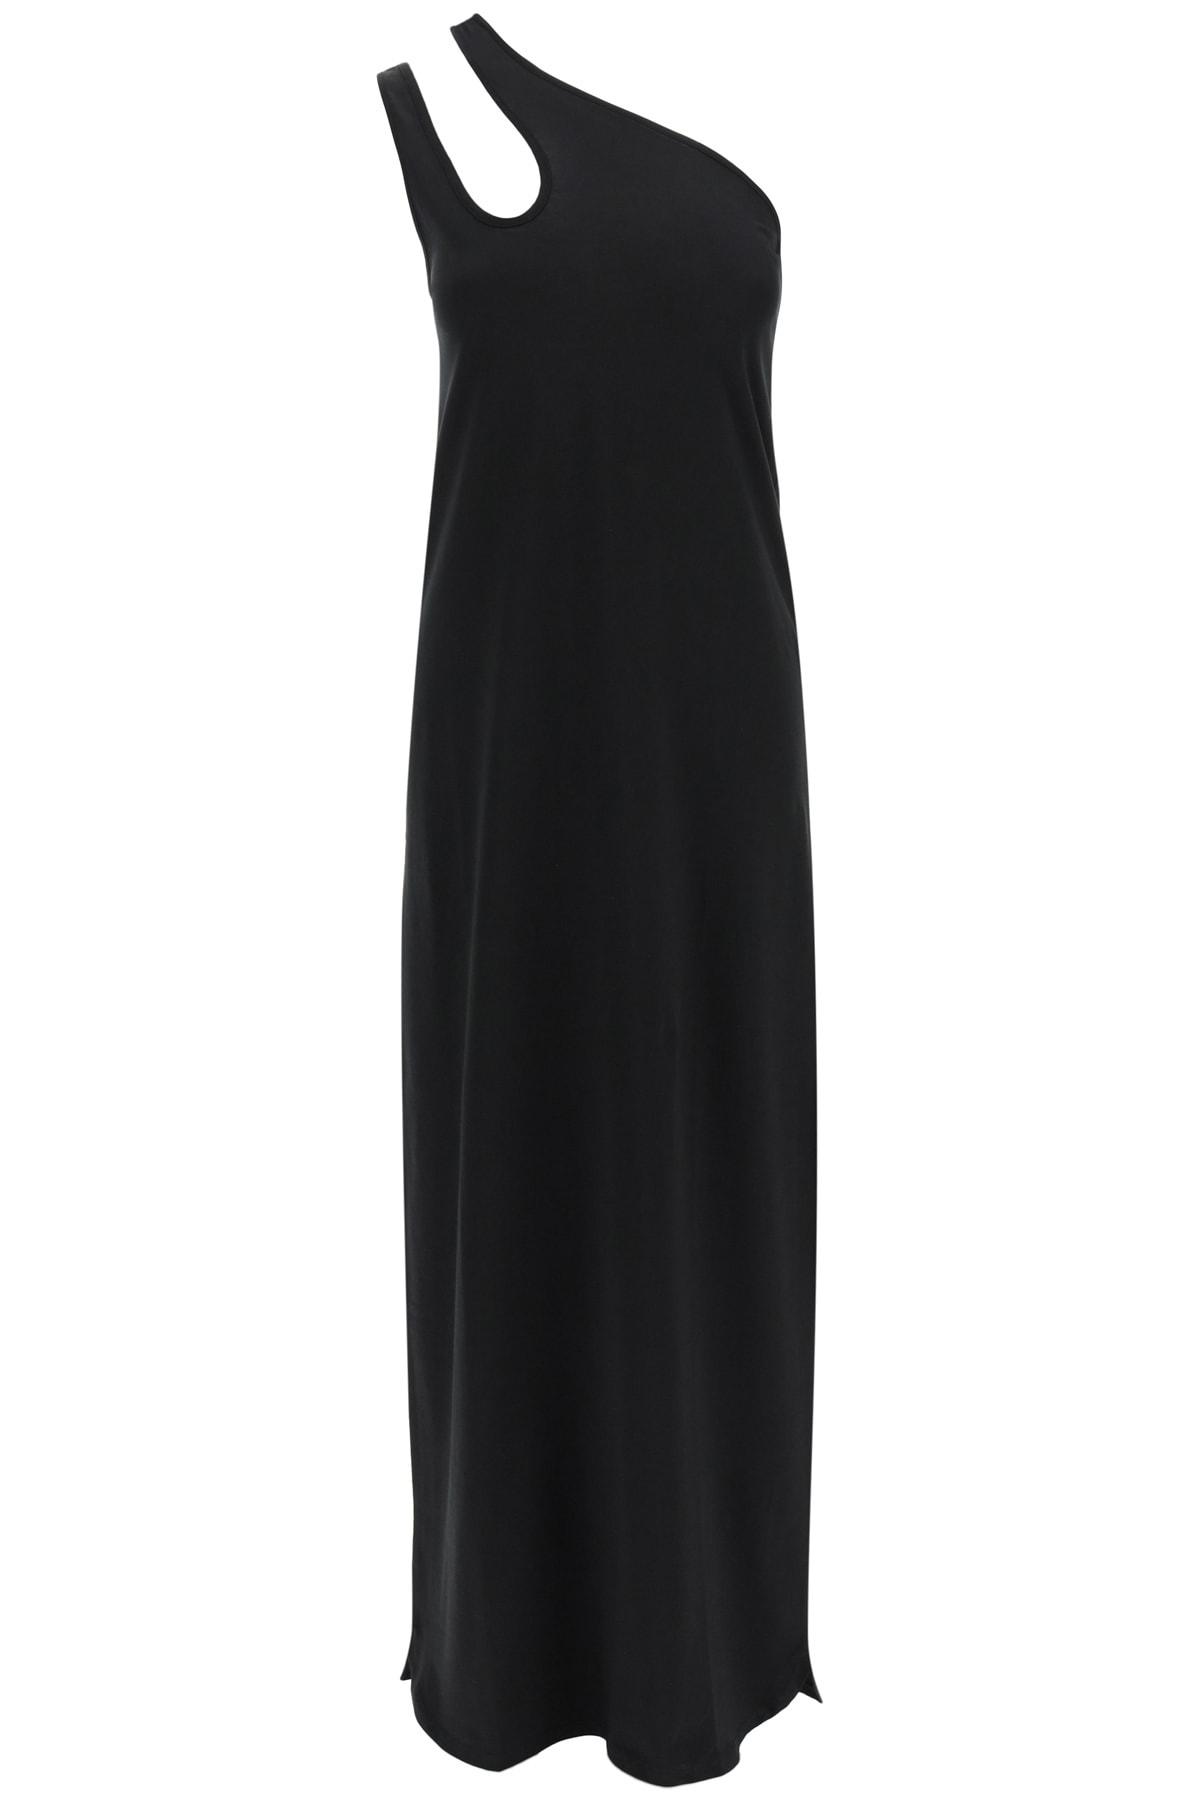 Loulou Studio Maxi dresses LONG DRESS WITH CUT-OUT